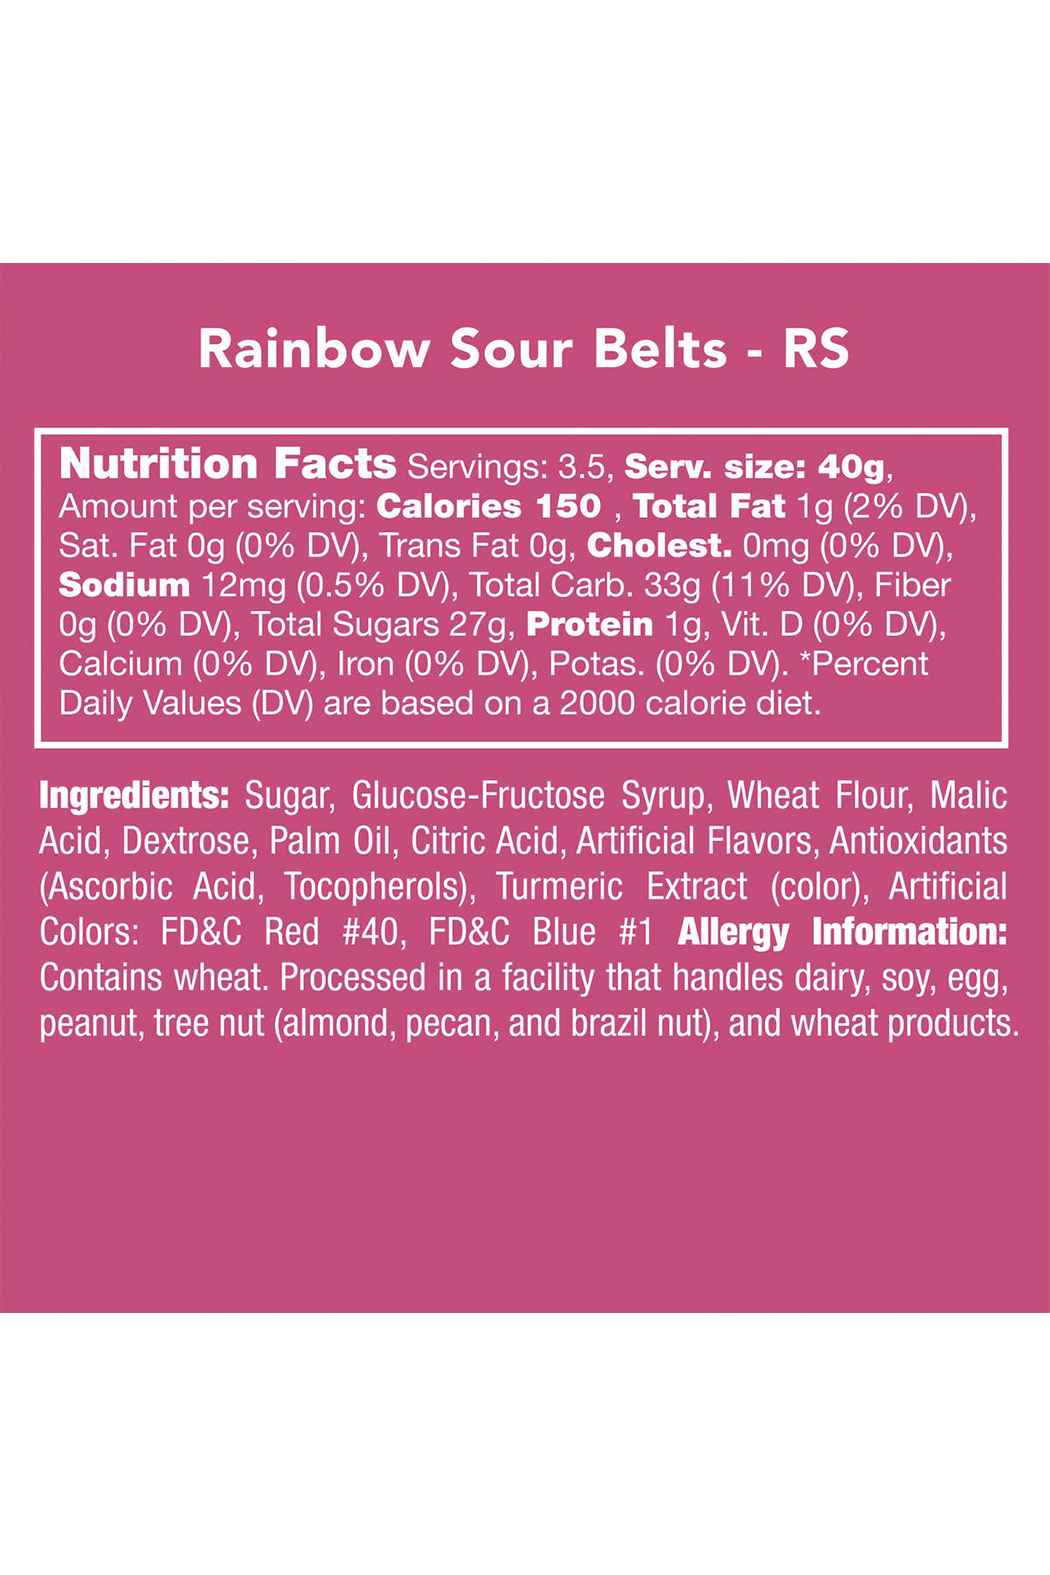 Candy Club Rainbow Sour Belts 5 oz - Side Cropped Image